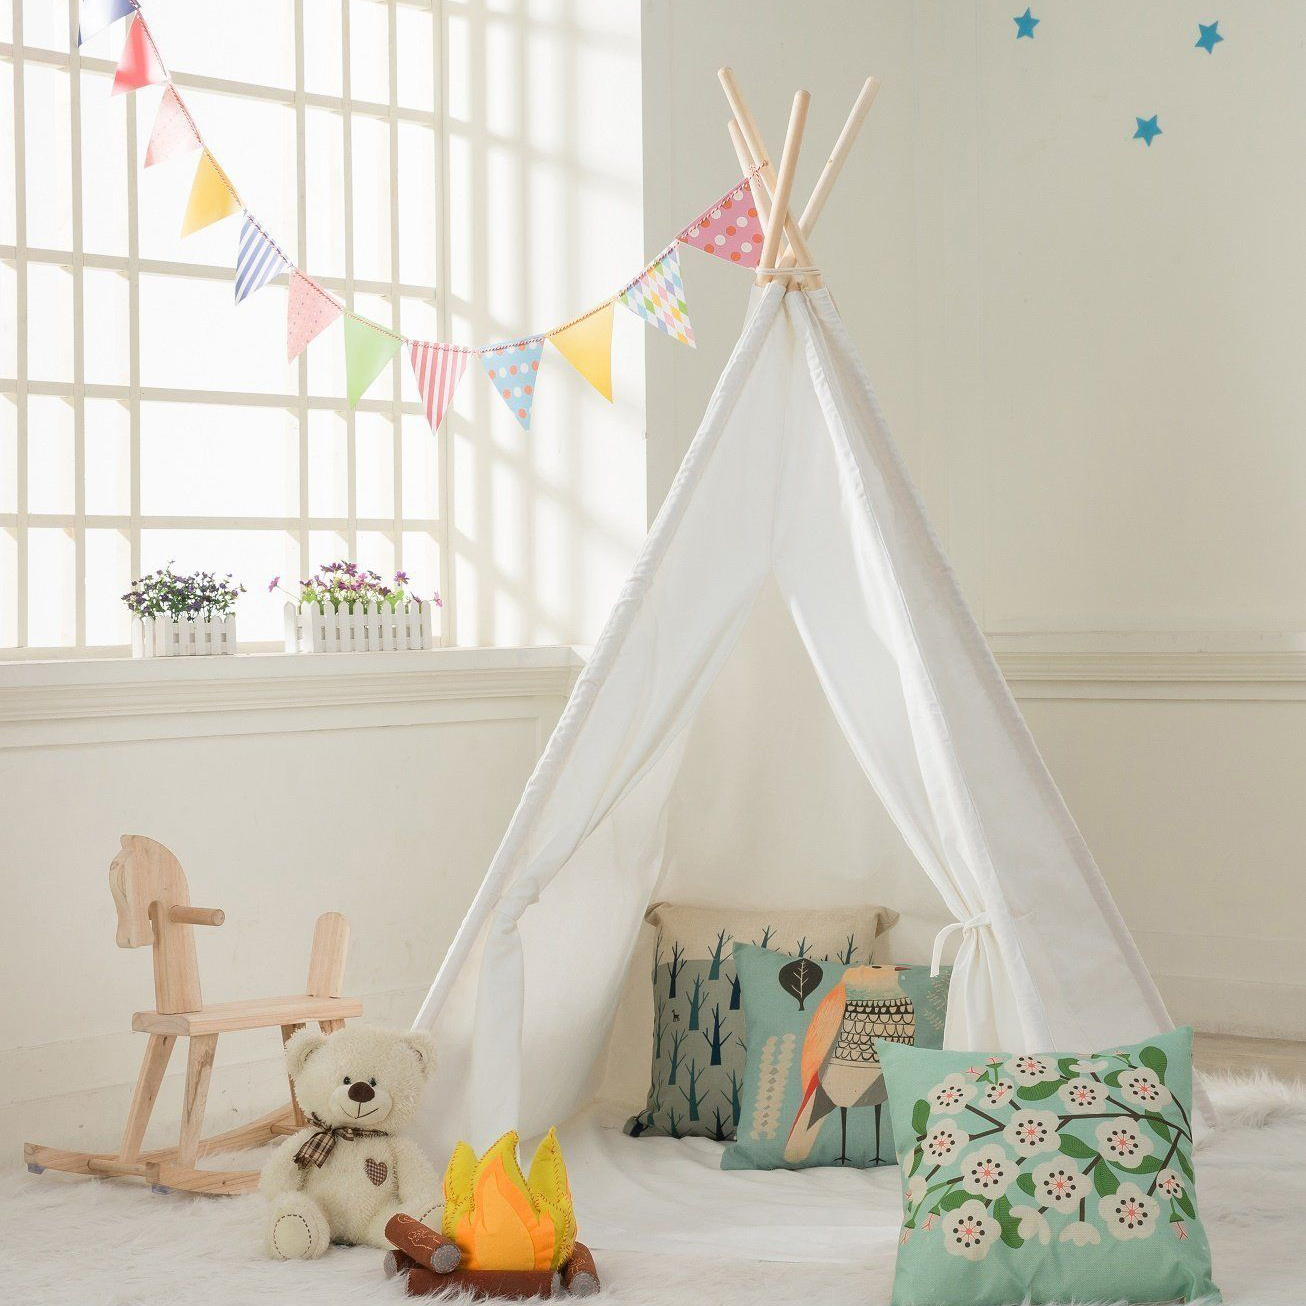 White Teepee Play Tent Kids Canvas Playhouse Sleeping Dome w/ Carrying Bag White  sc 1 st  eBay & White Teepee Play Tent Kids Canvas Playhouse Sleeping Dome w ...